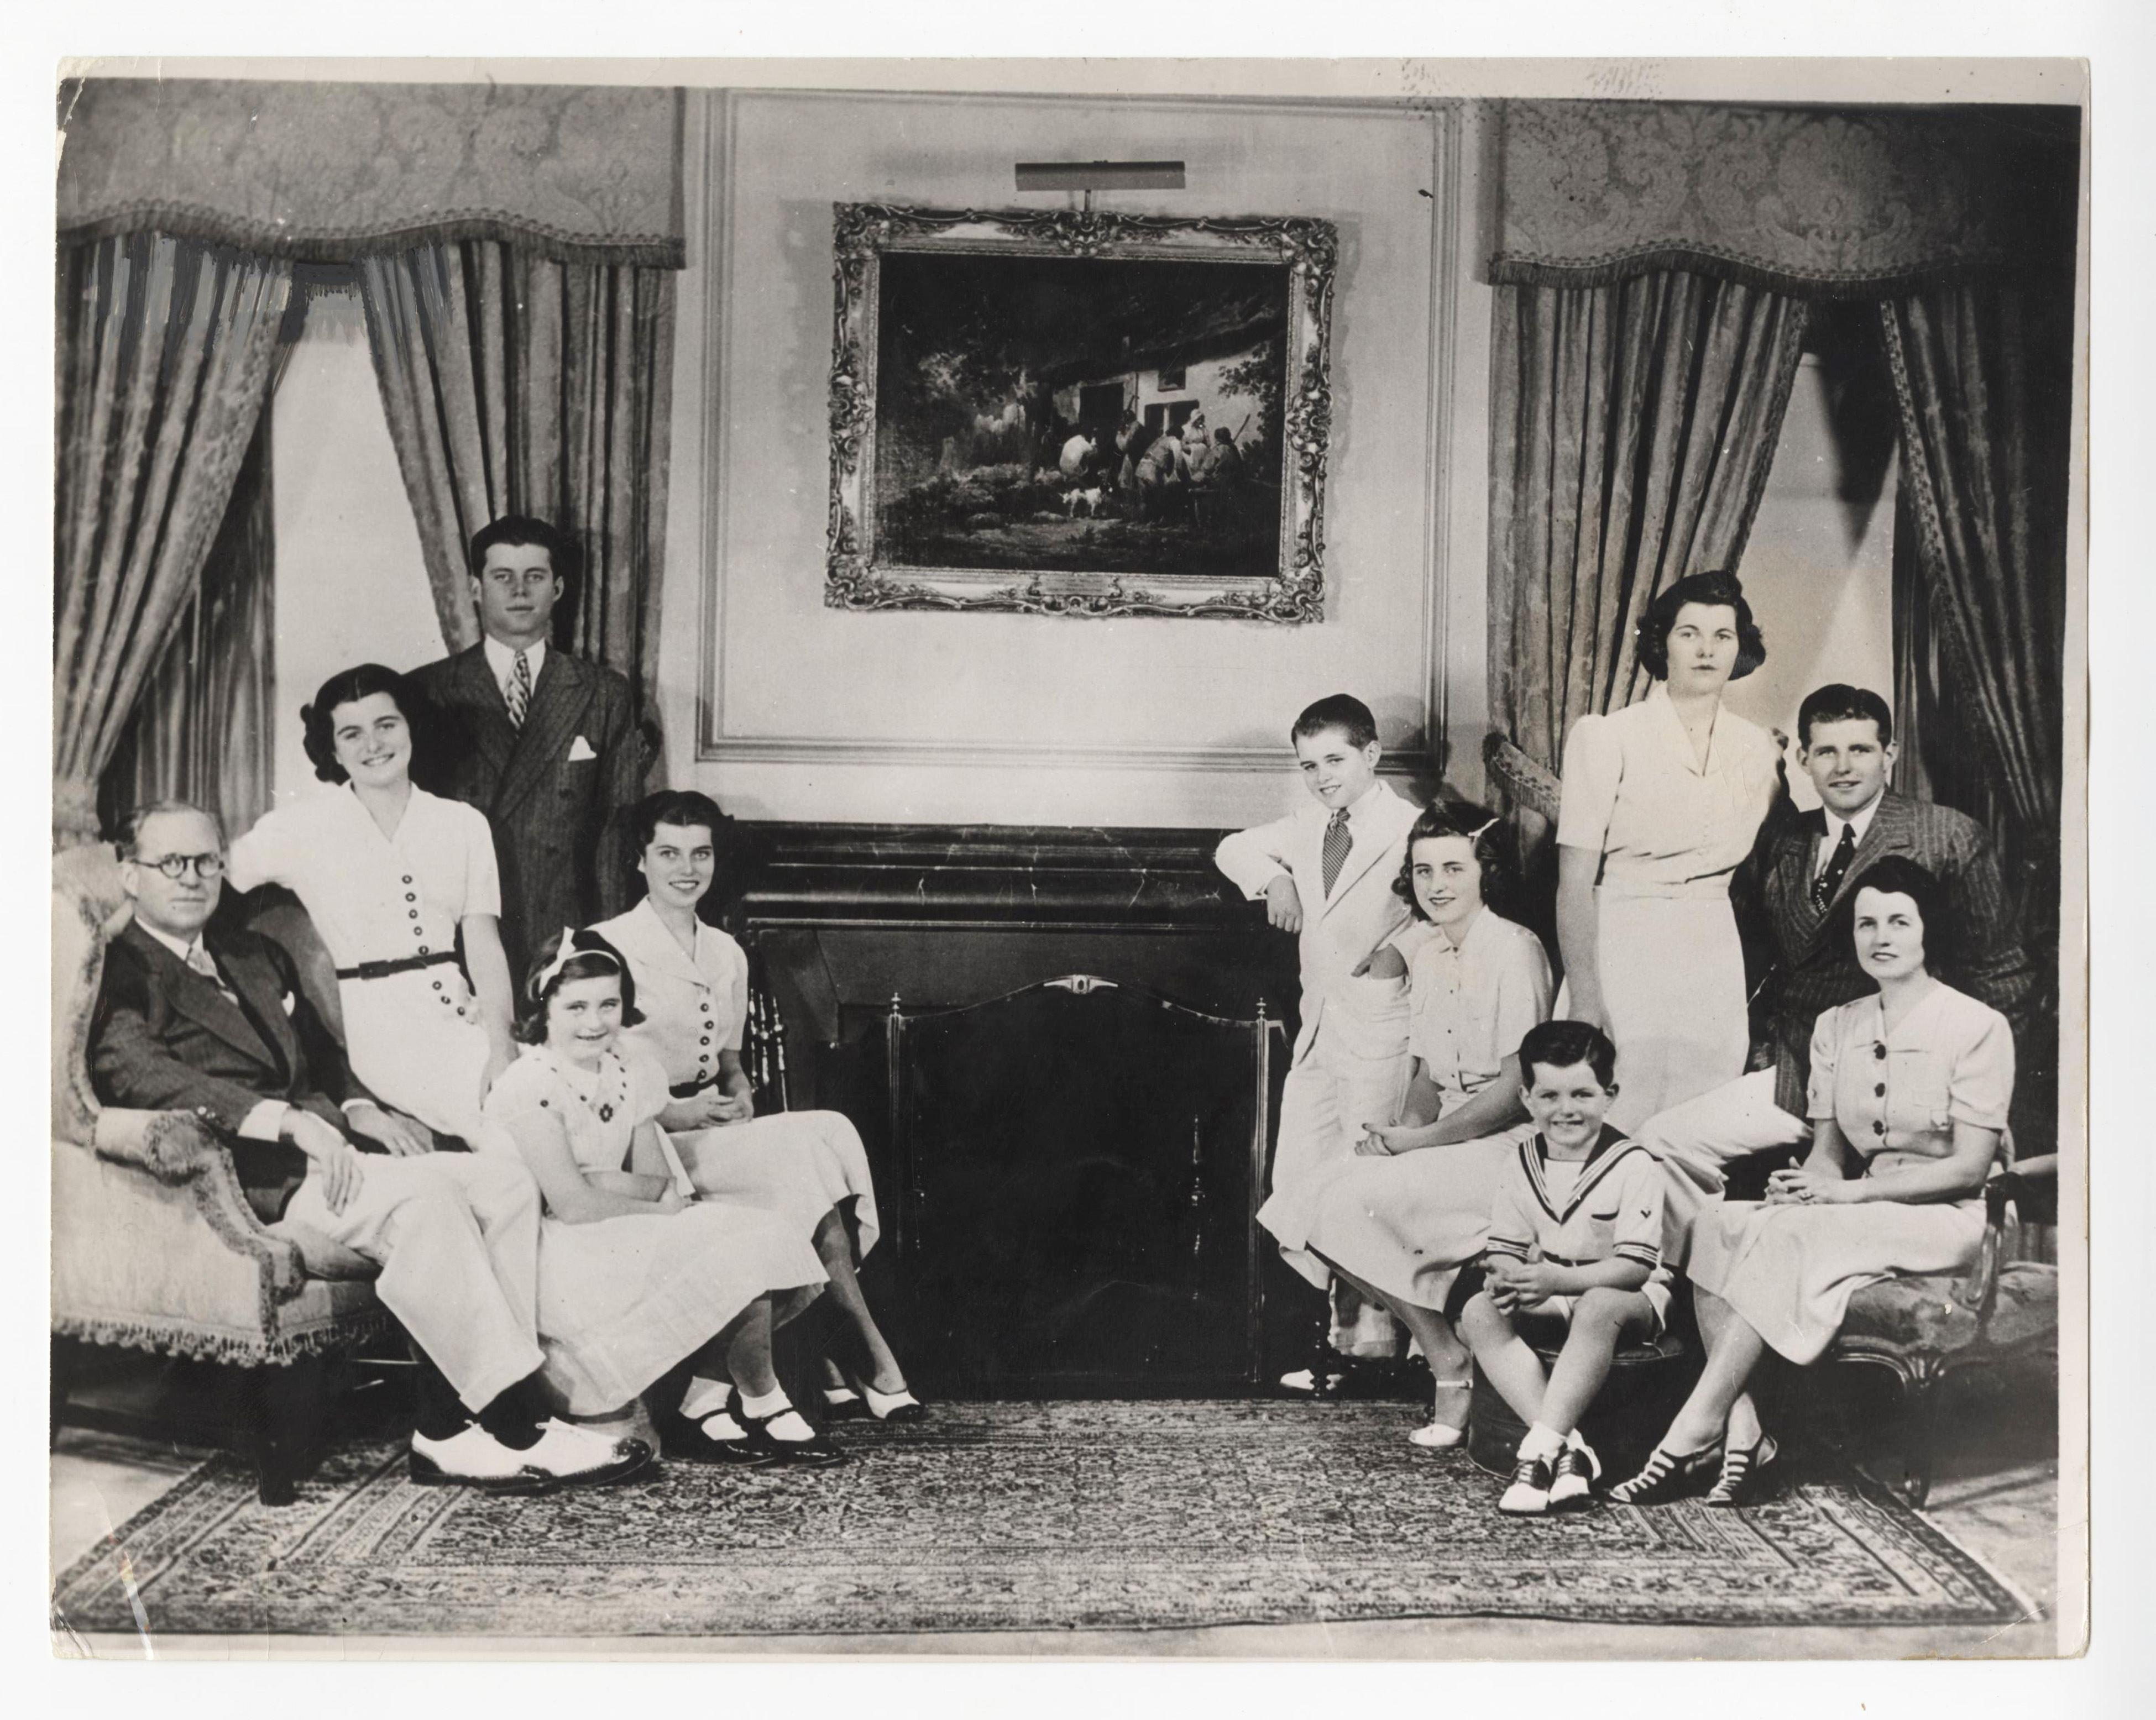 Fabulous Vintage Photo of the Kennedy Family